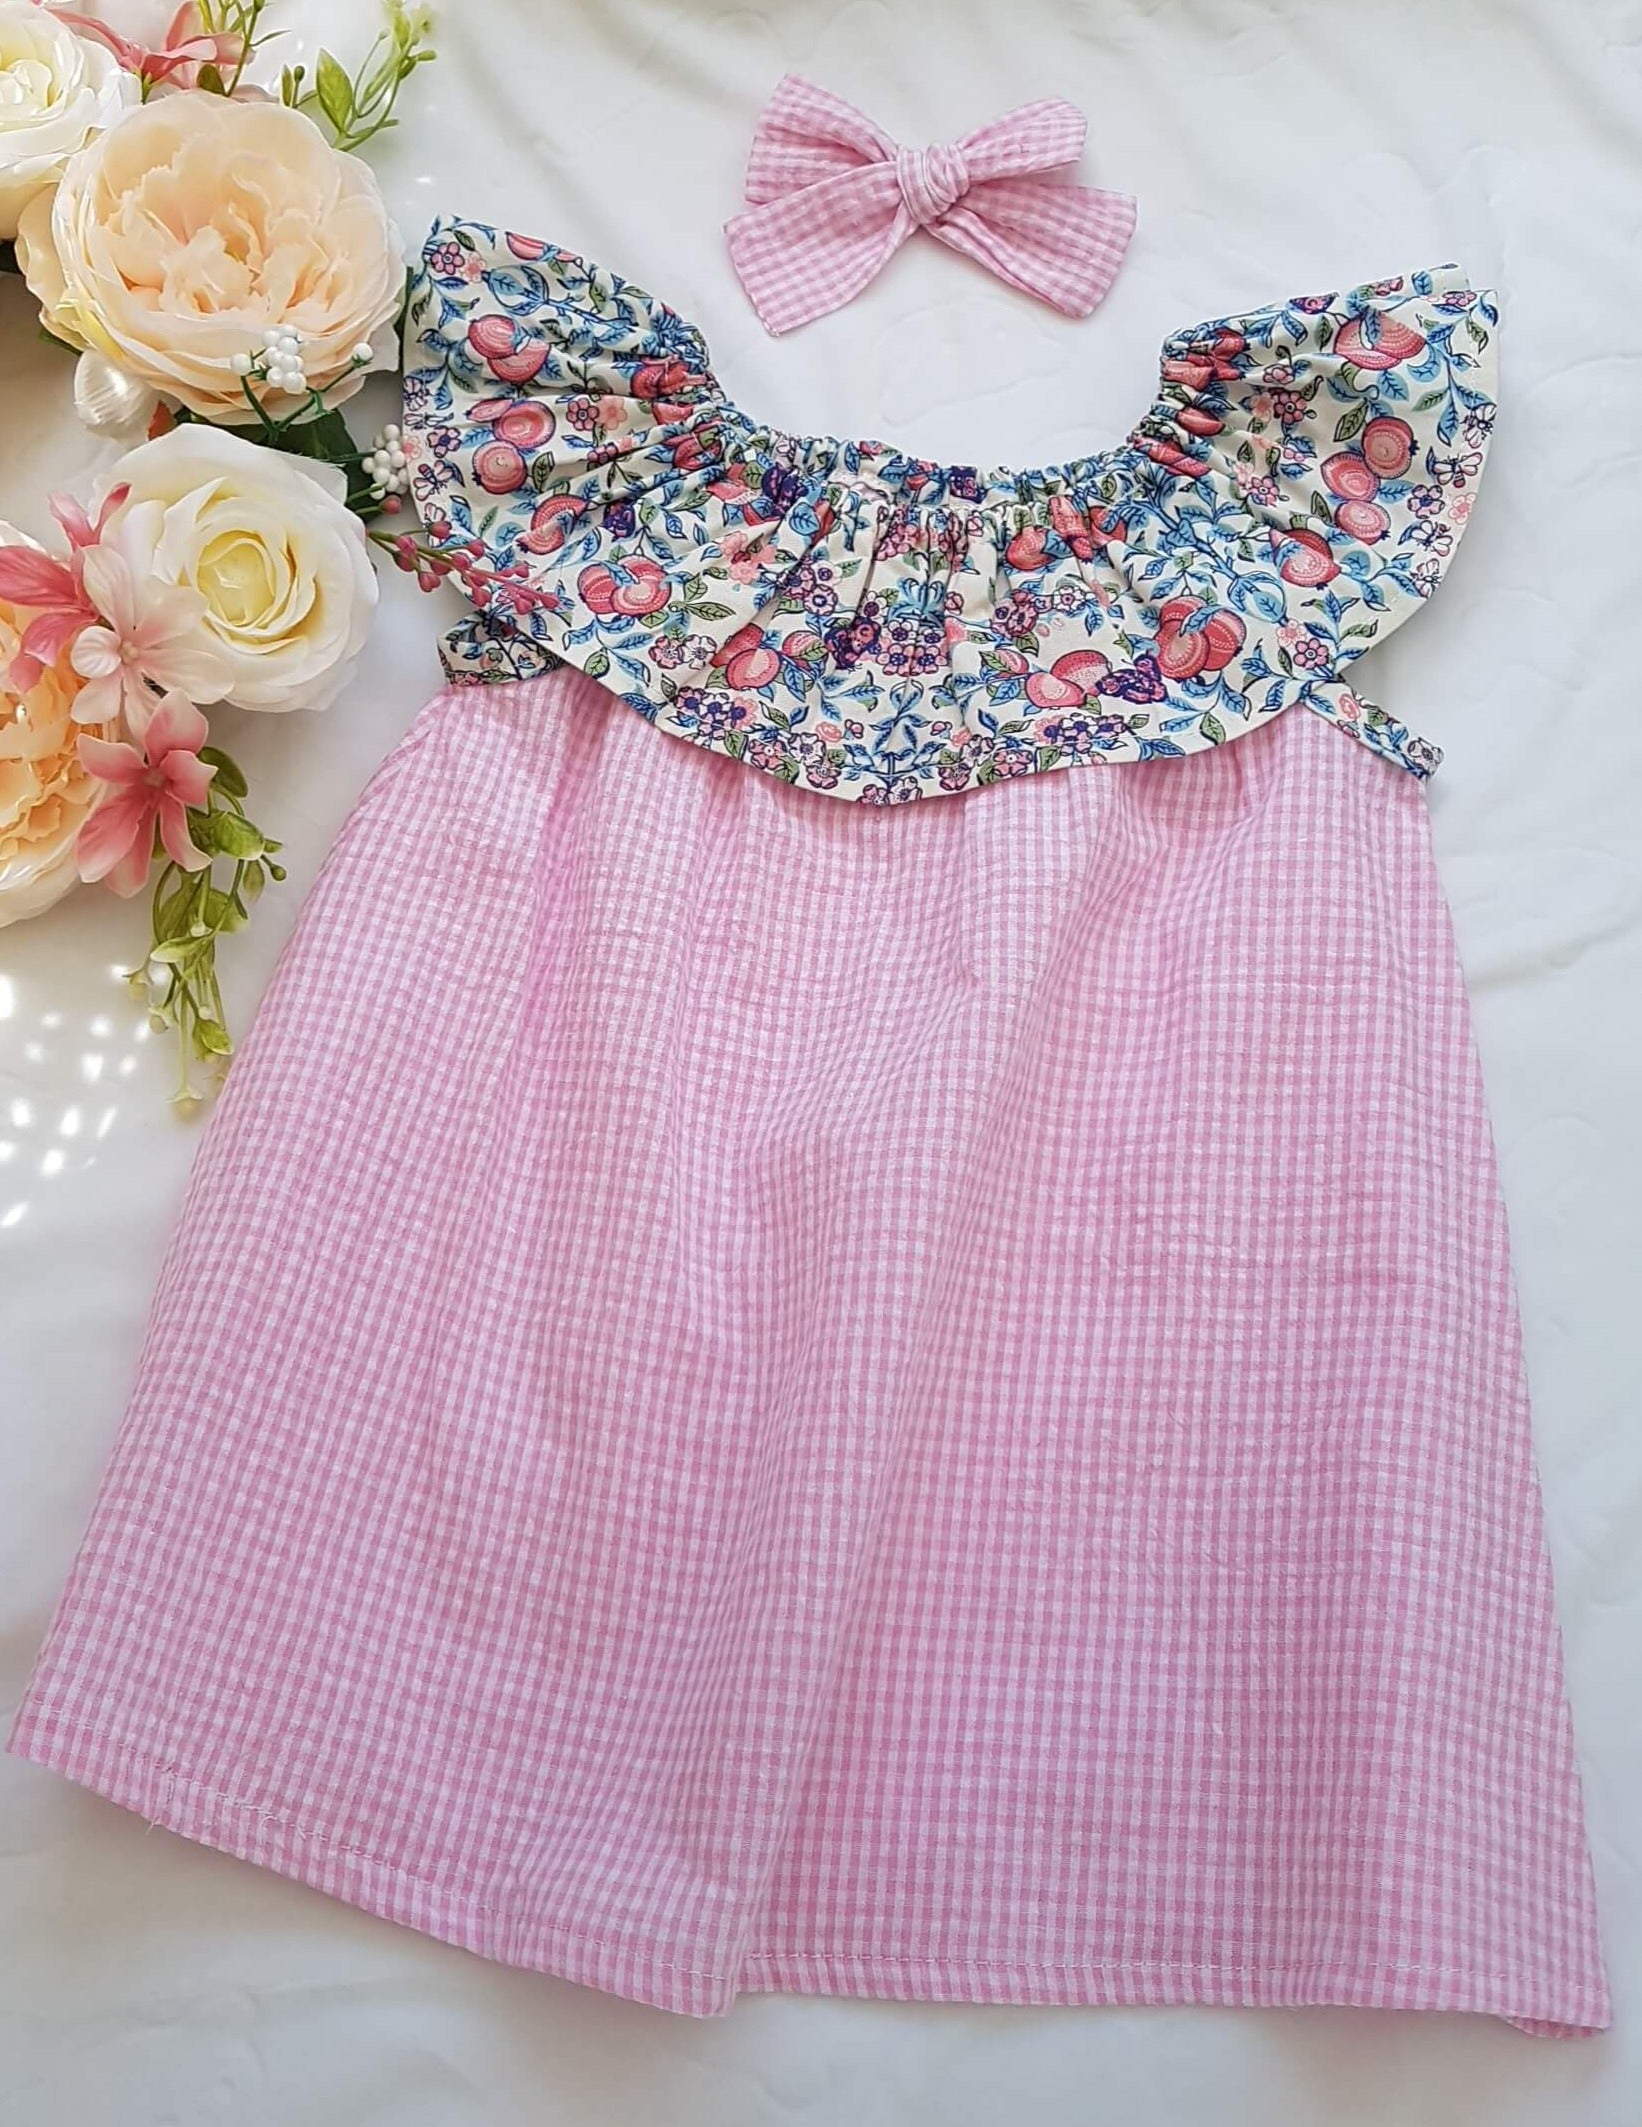 Ruffled collar summer dress